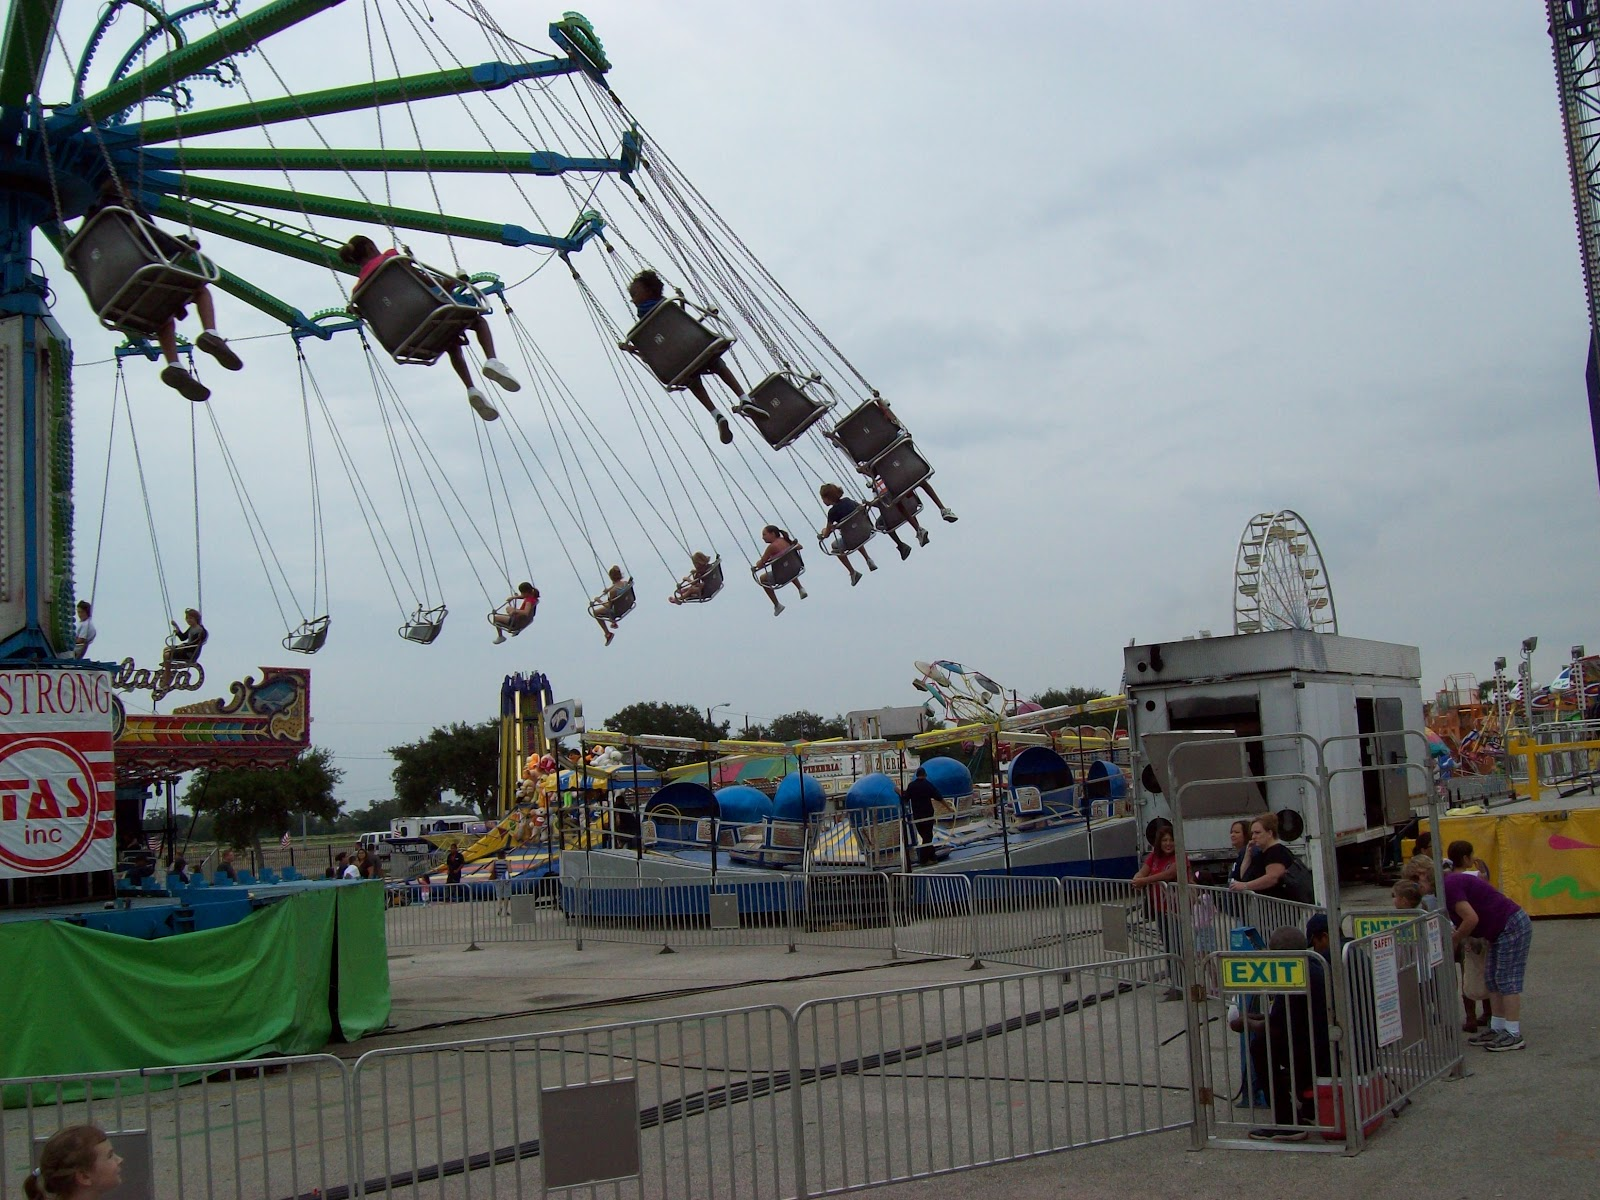 Fort Bend County Fair - 101_5577.JPG